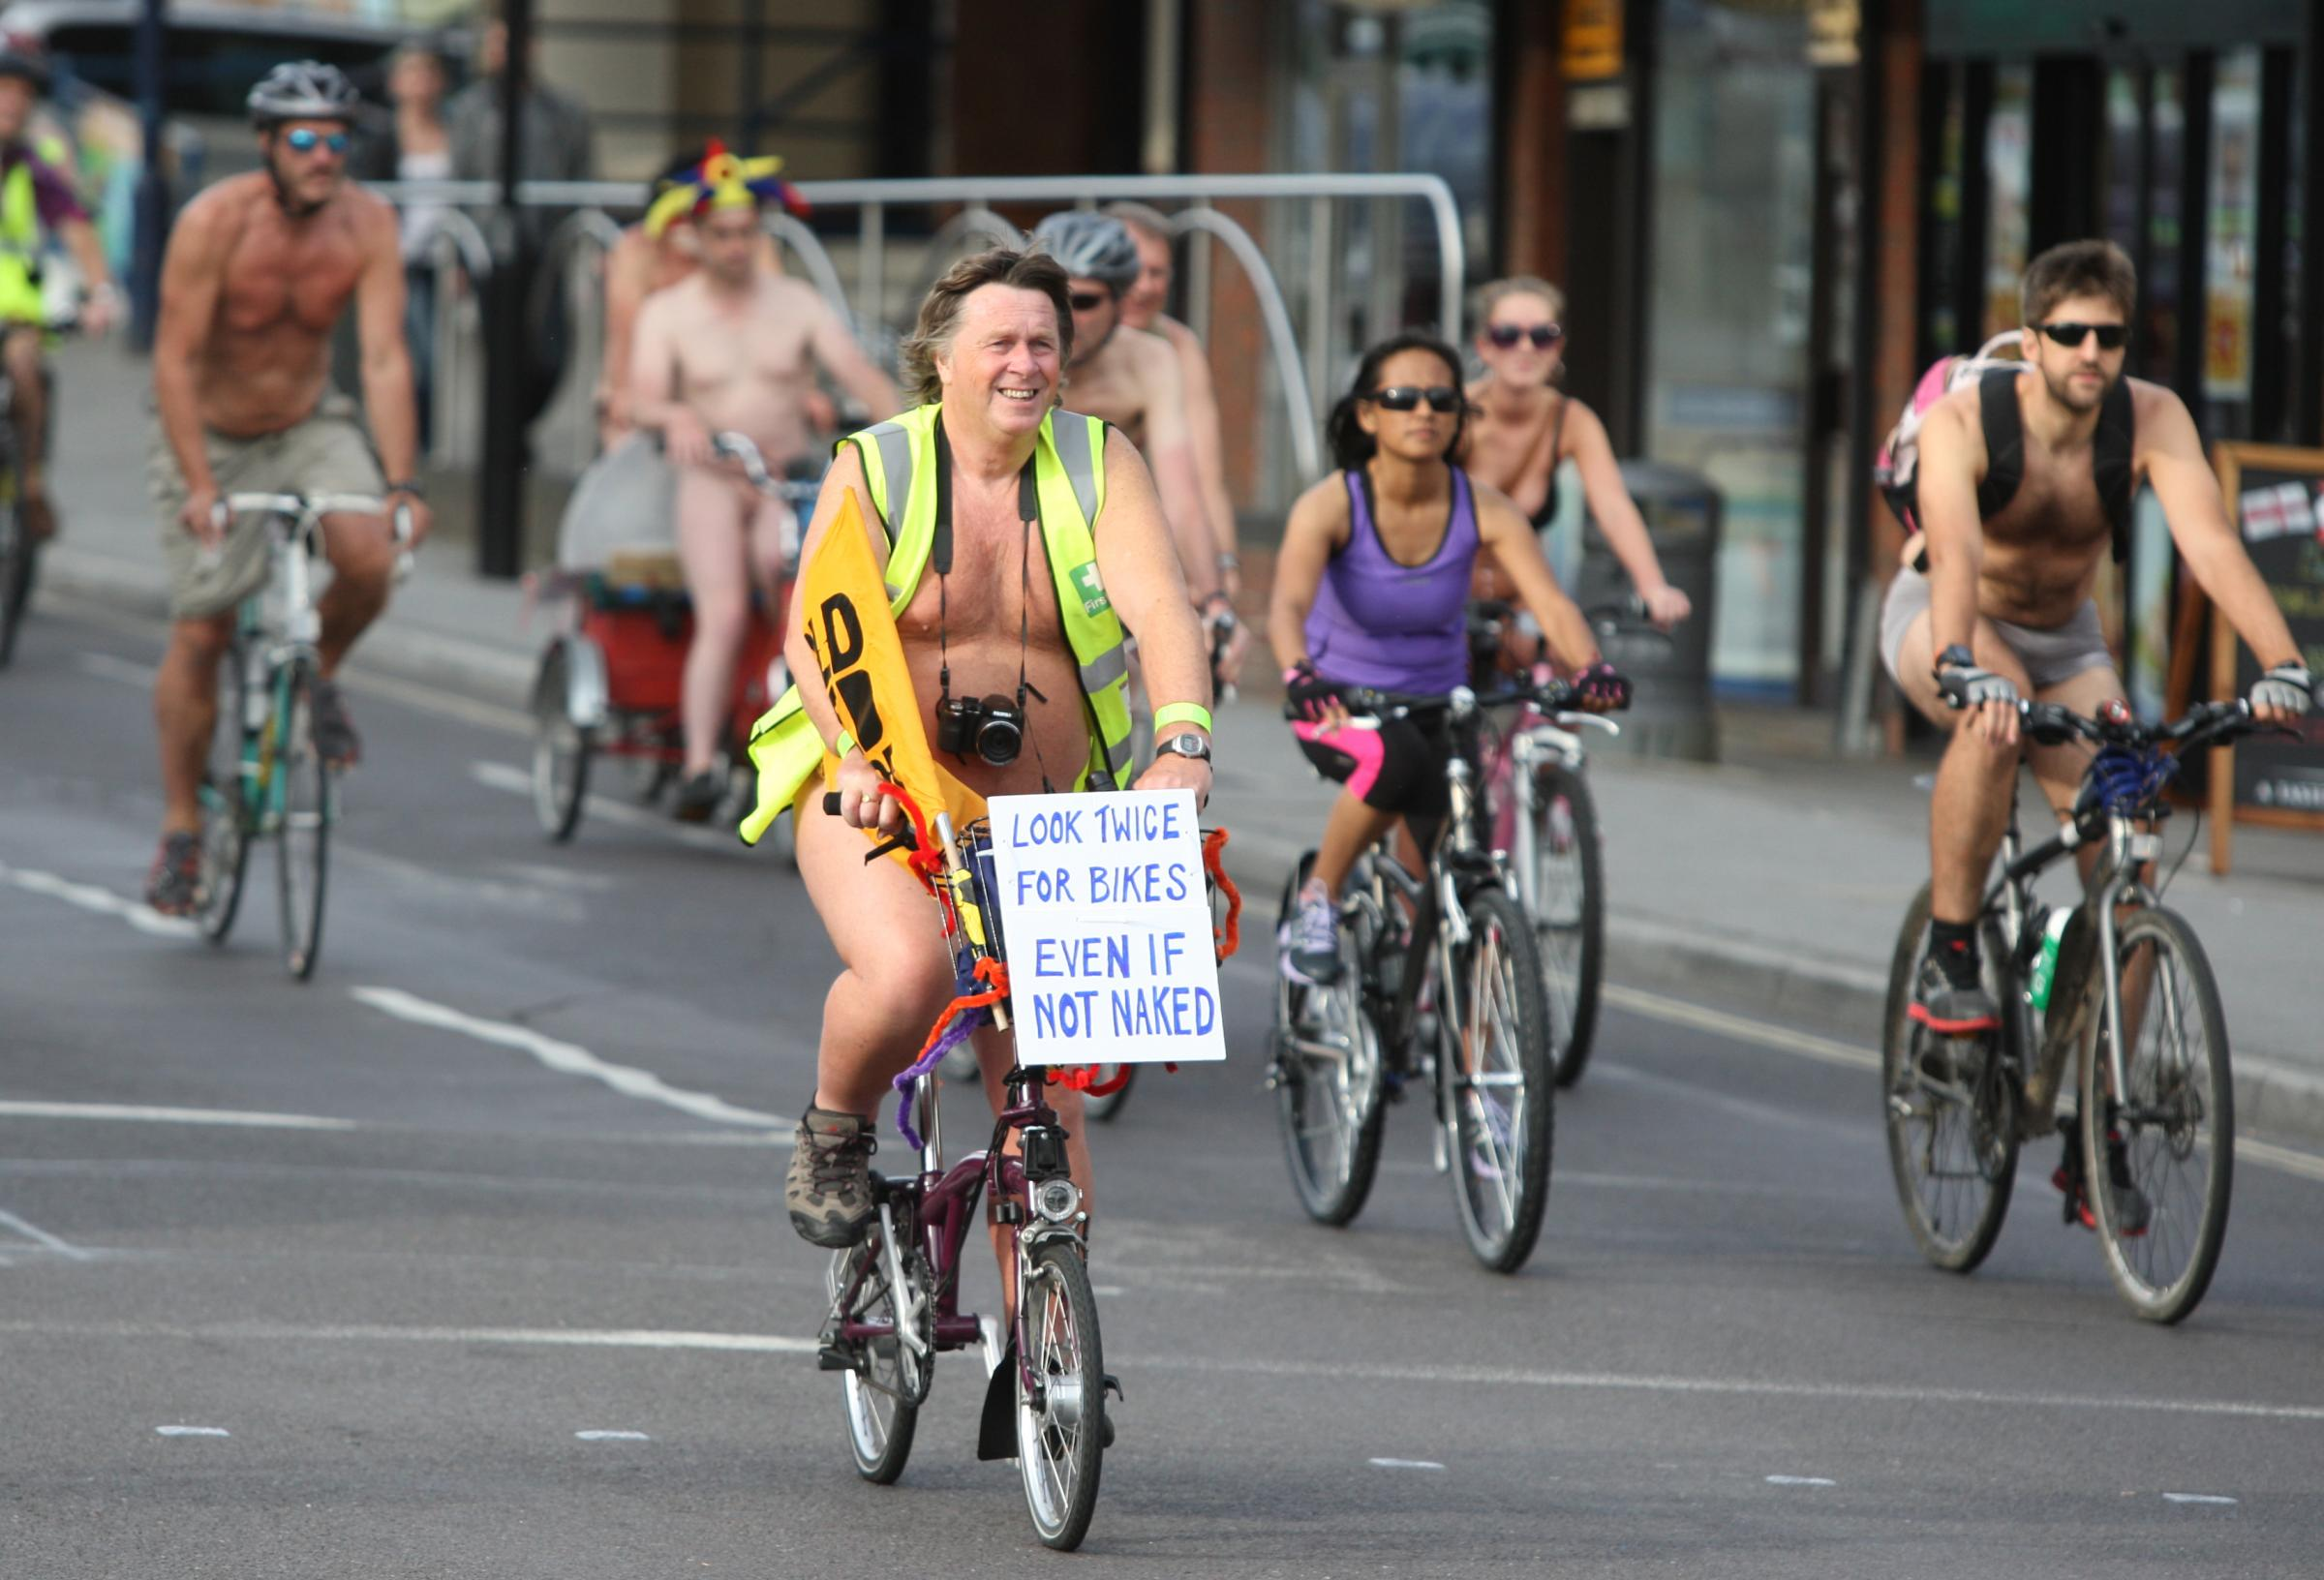 Dozens take part in naked bike ride